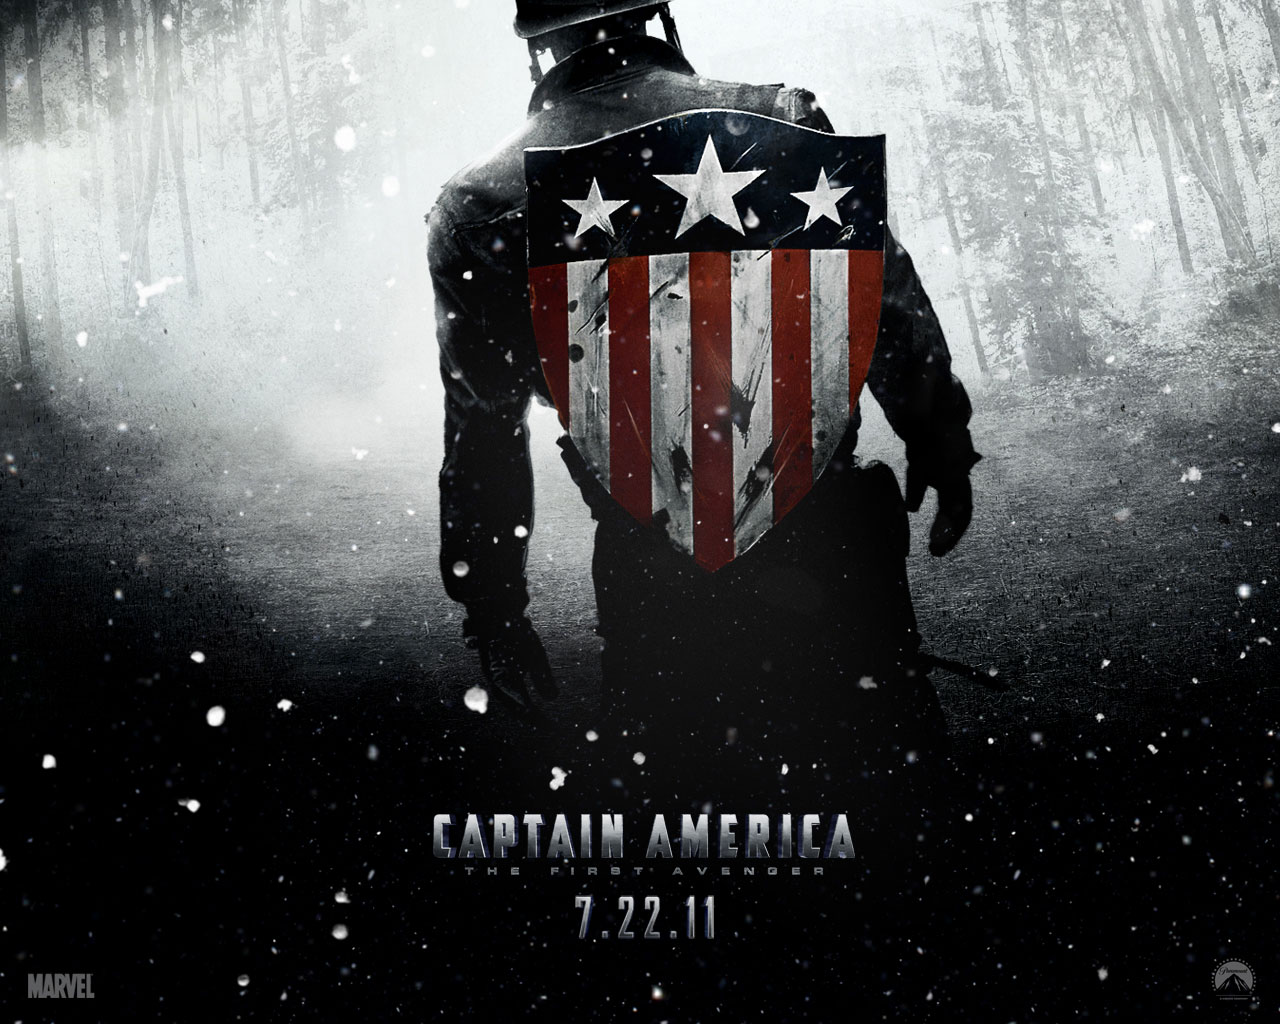 Captain america the first avenger high quality hd - Captain america screensaver download ...